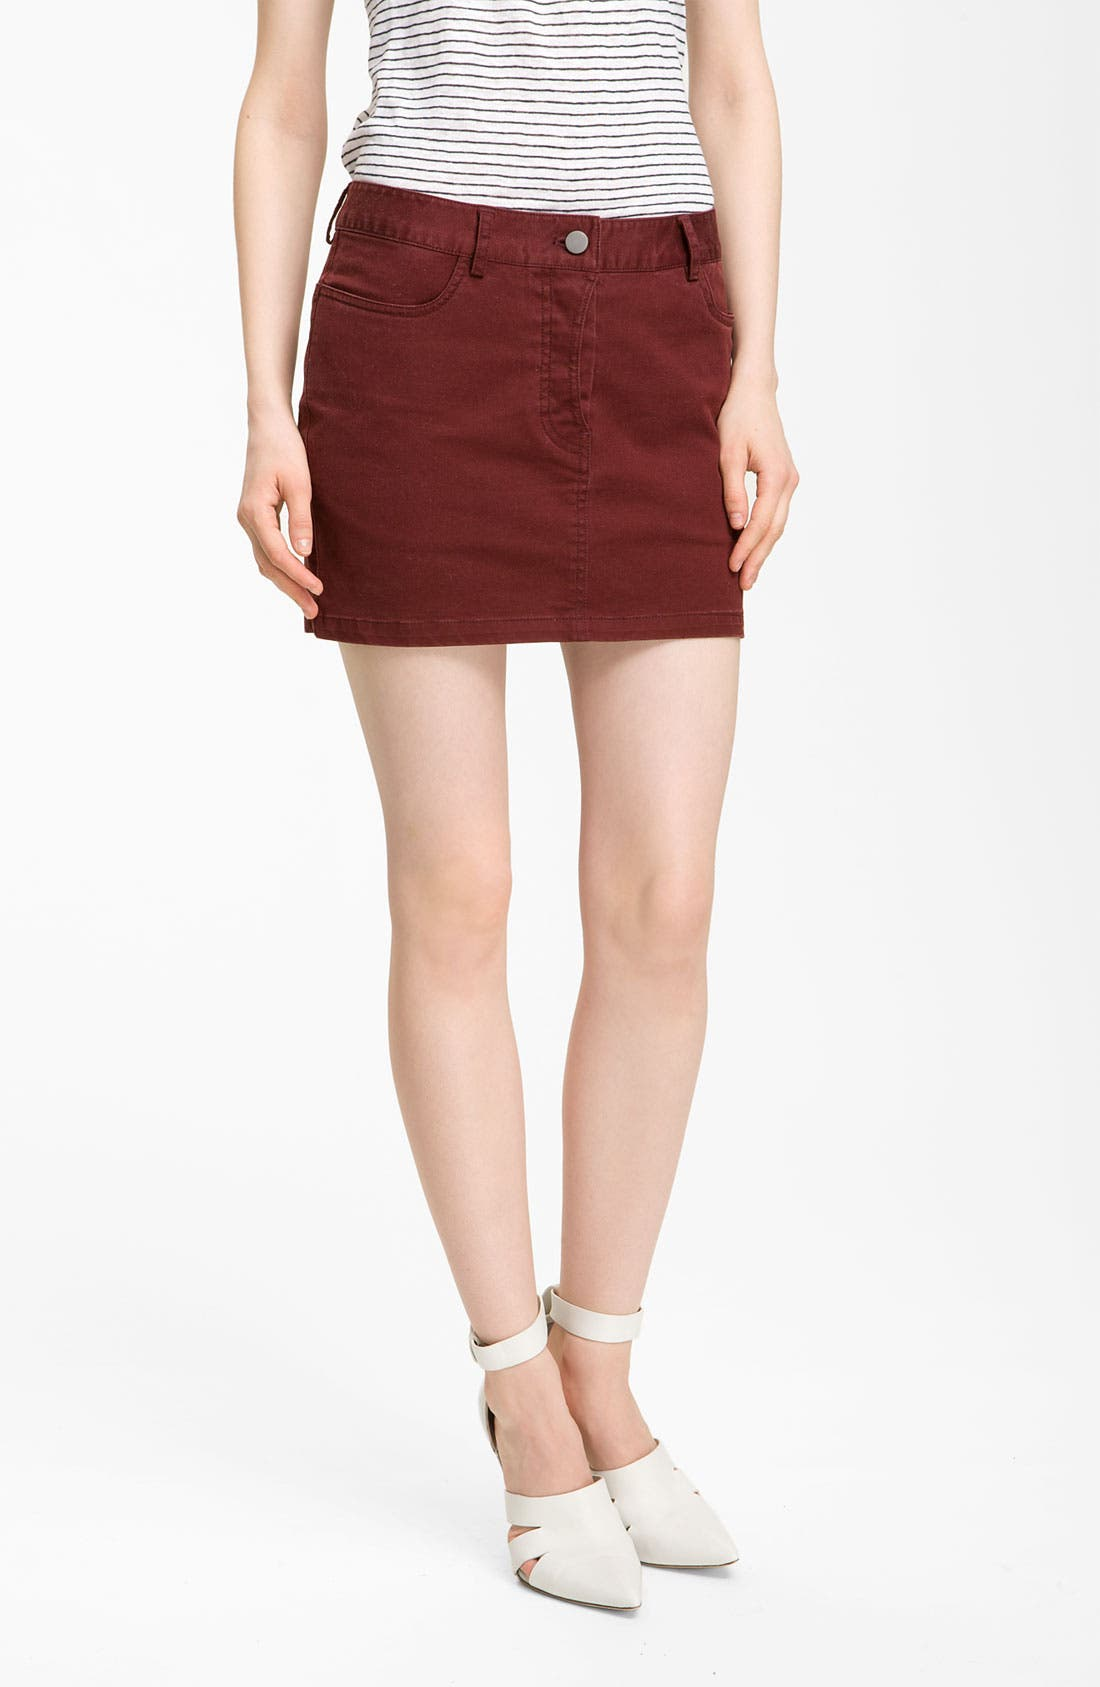 Alternate Image 1 Selected - T by Alexander Wang Stretch Twill Jean Skirt